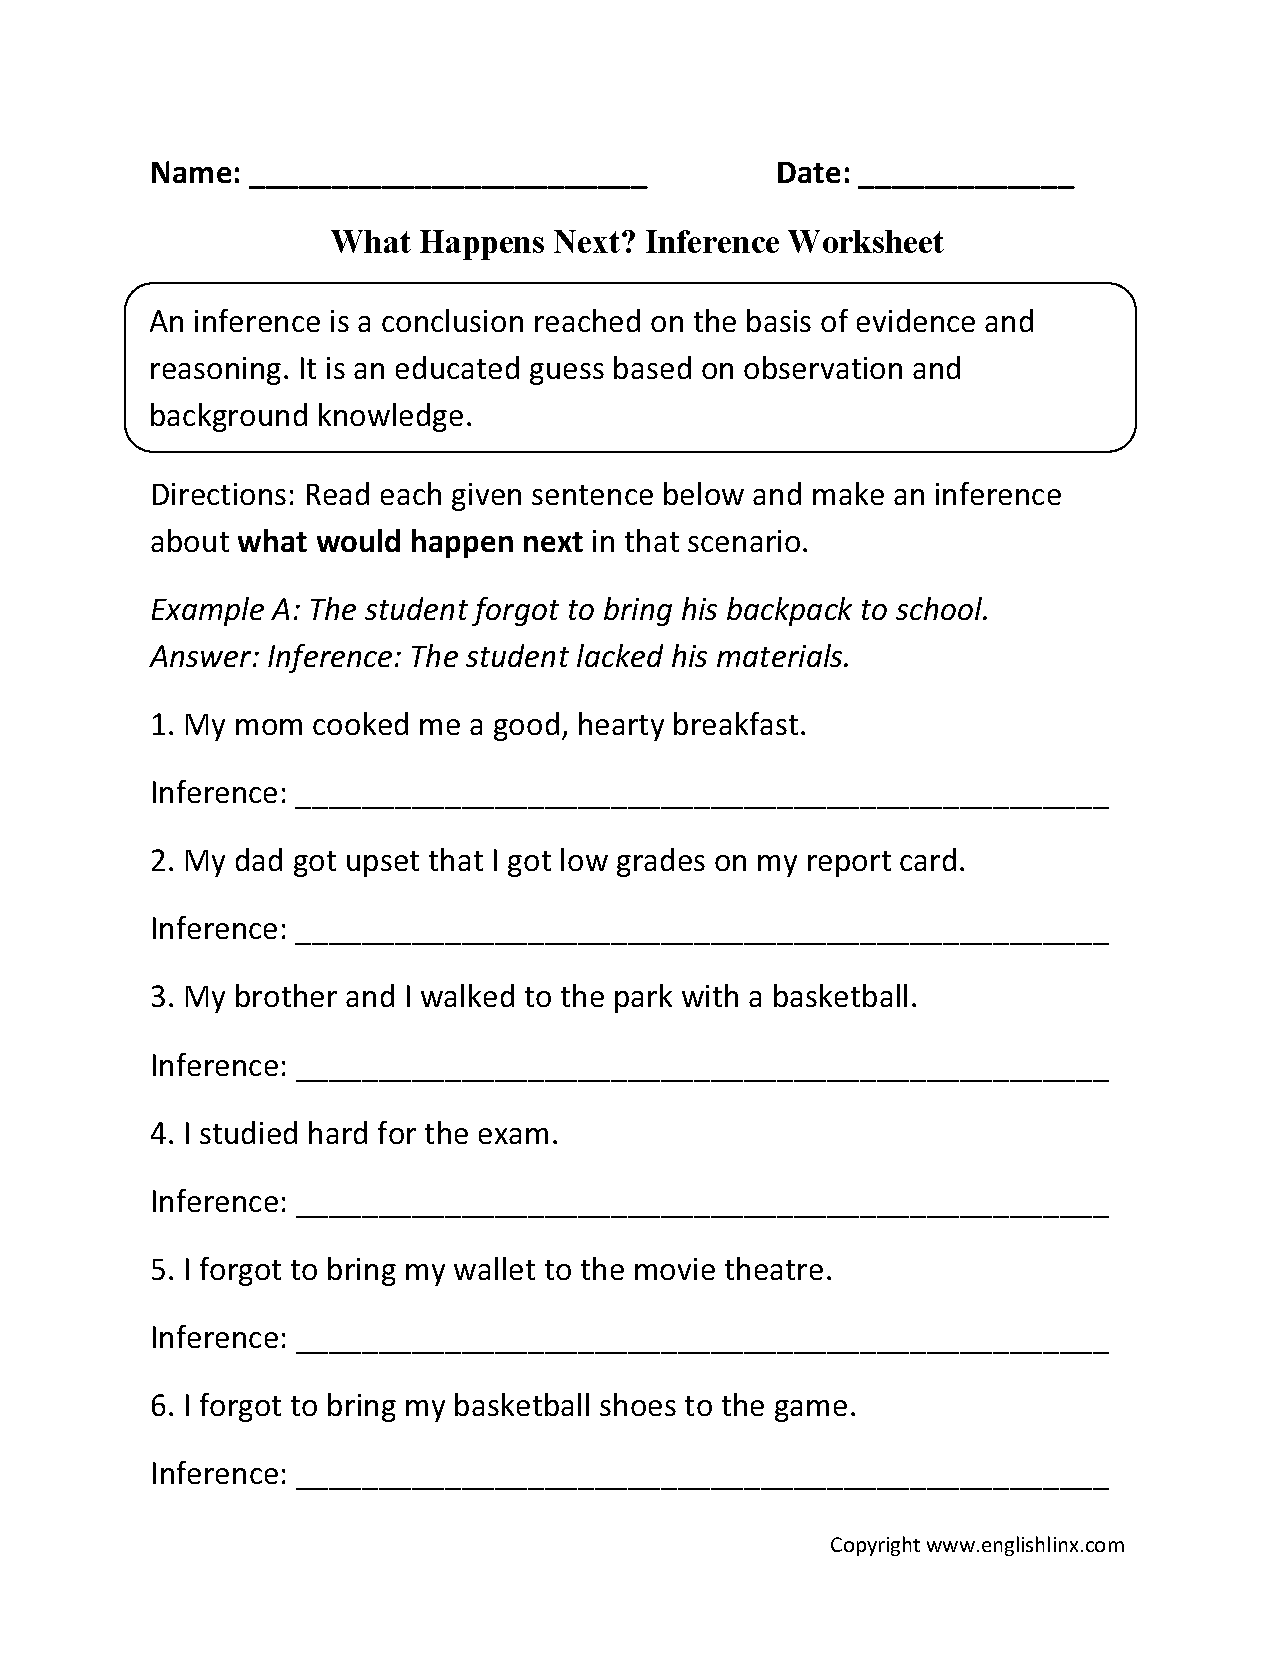 Inference Worksheets   What Happens Next? Inference Worksheets   Inferring  lessons [ 1662 x 1275 Pixel ]